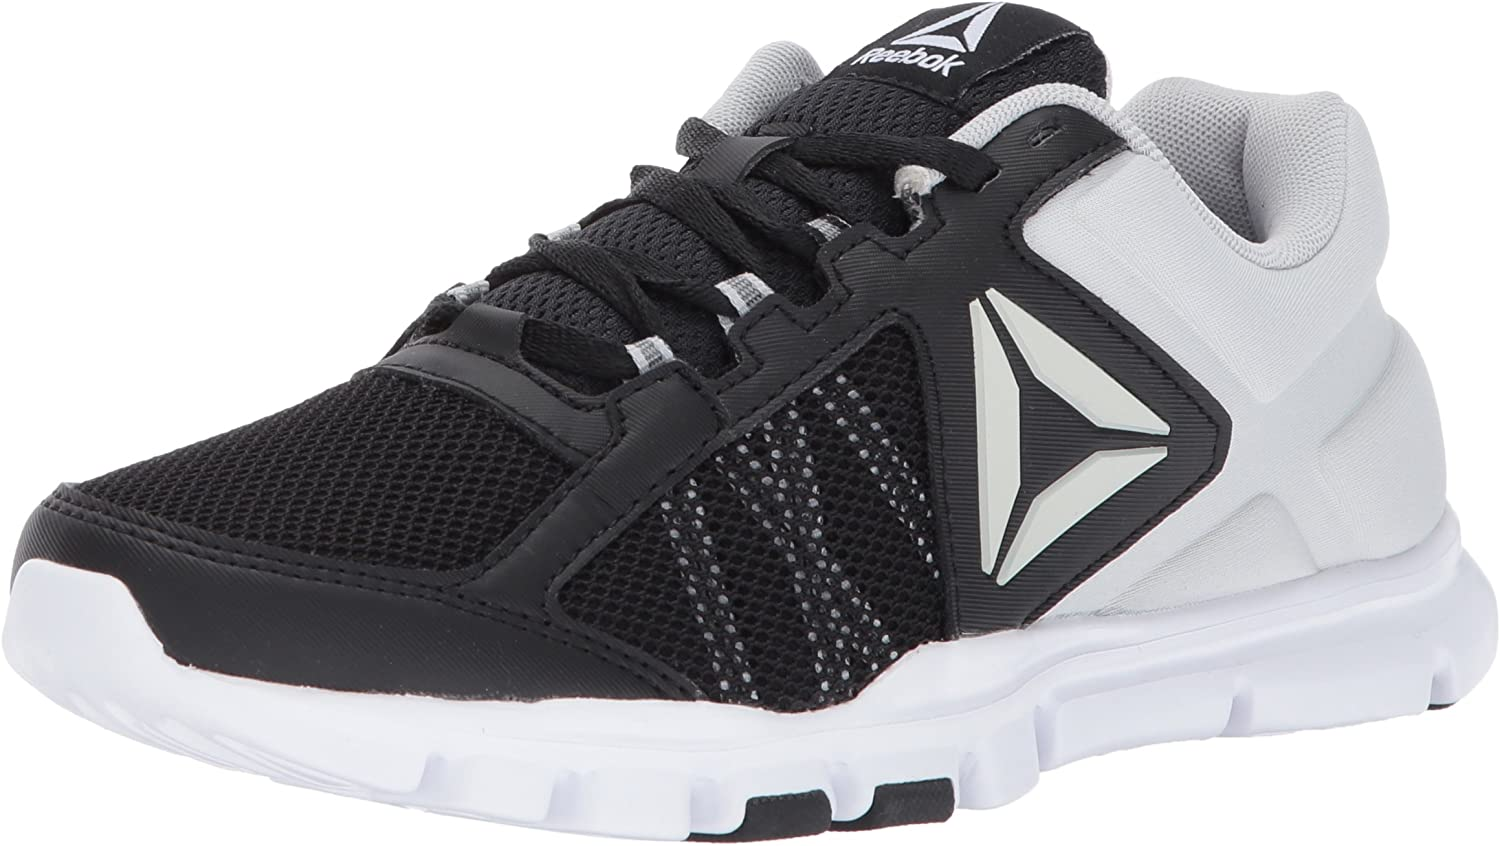 Reebok Women s Yourflex Trainette 9.0 MT Cross-Trainer Shoe